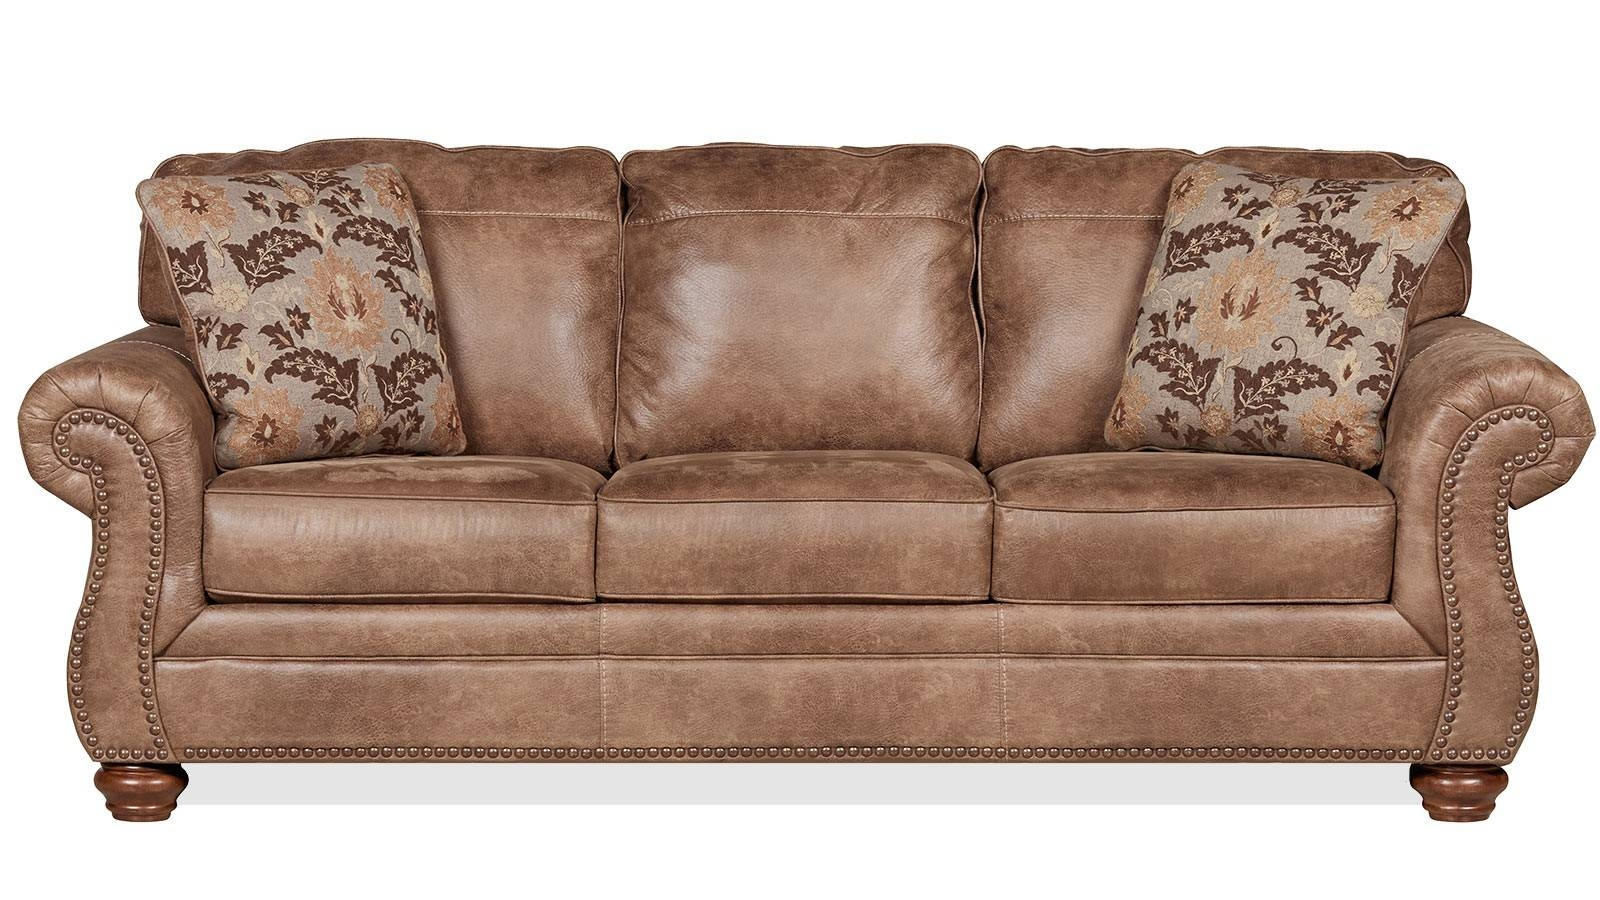 Hallettsville Earth Queen Sleeper Sofa | Gallery Intended For Sleeper Sofas (View 6 of 15)